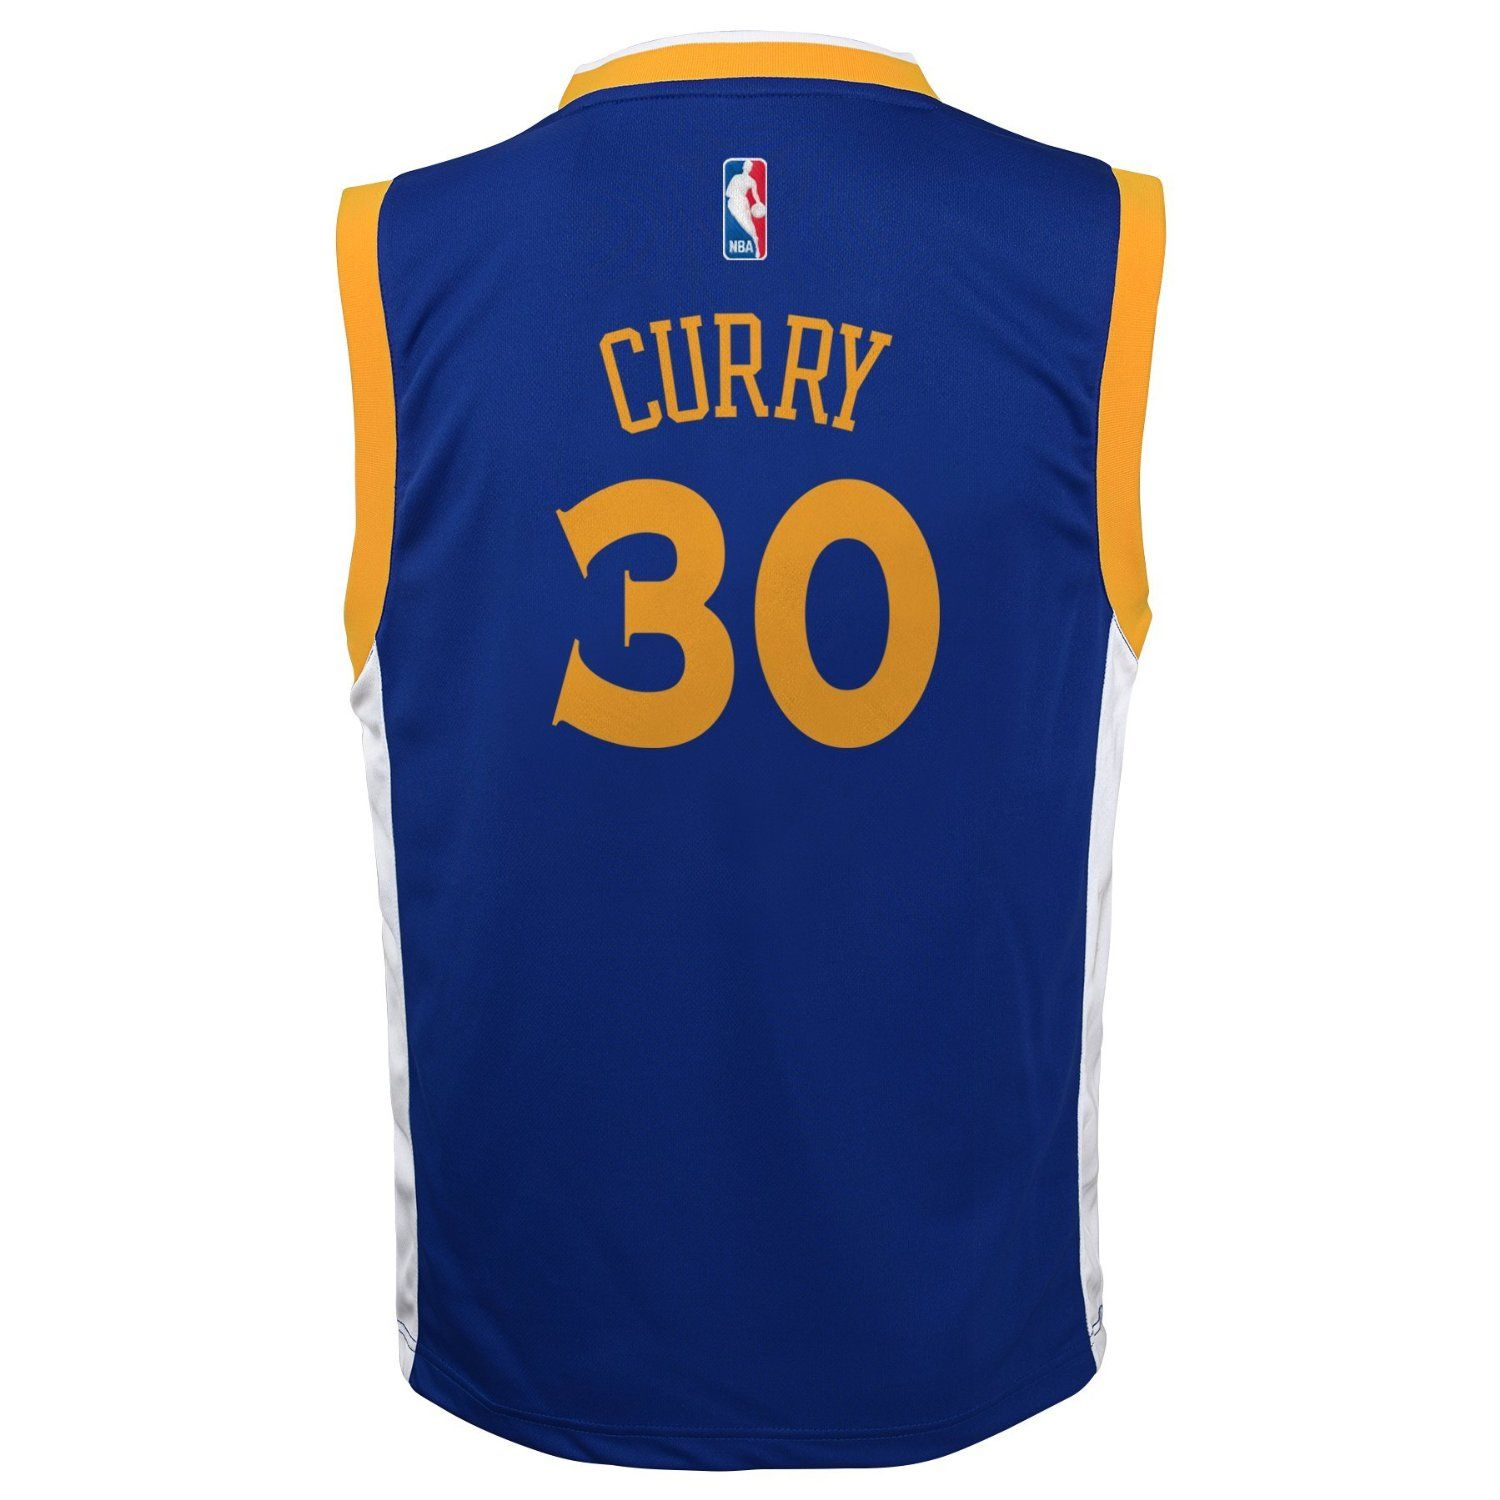 a7bbf1c3 Pin by fjpt on curry-30 | Warriors stephen curry, Golden state ...